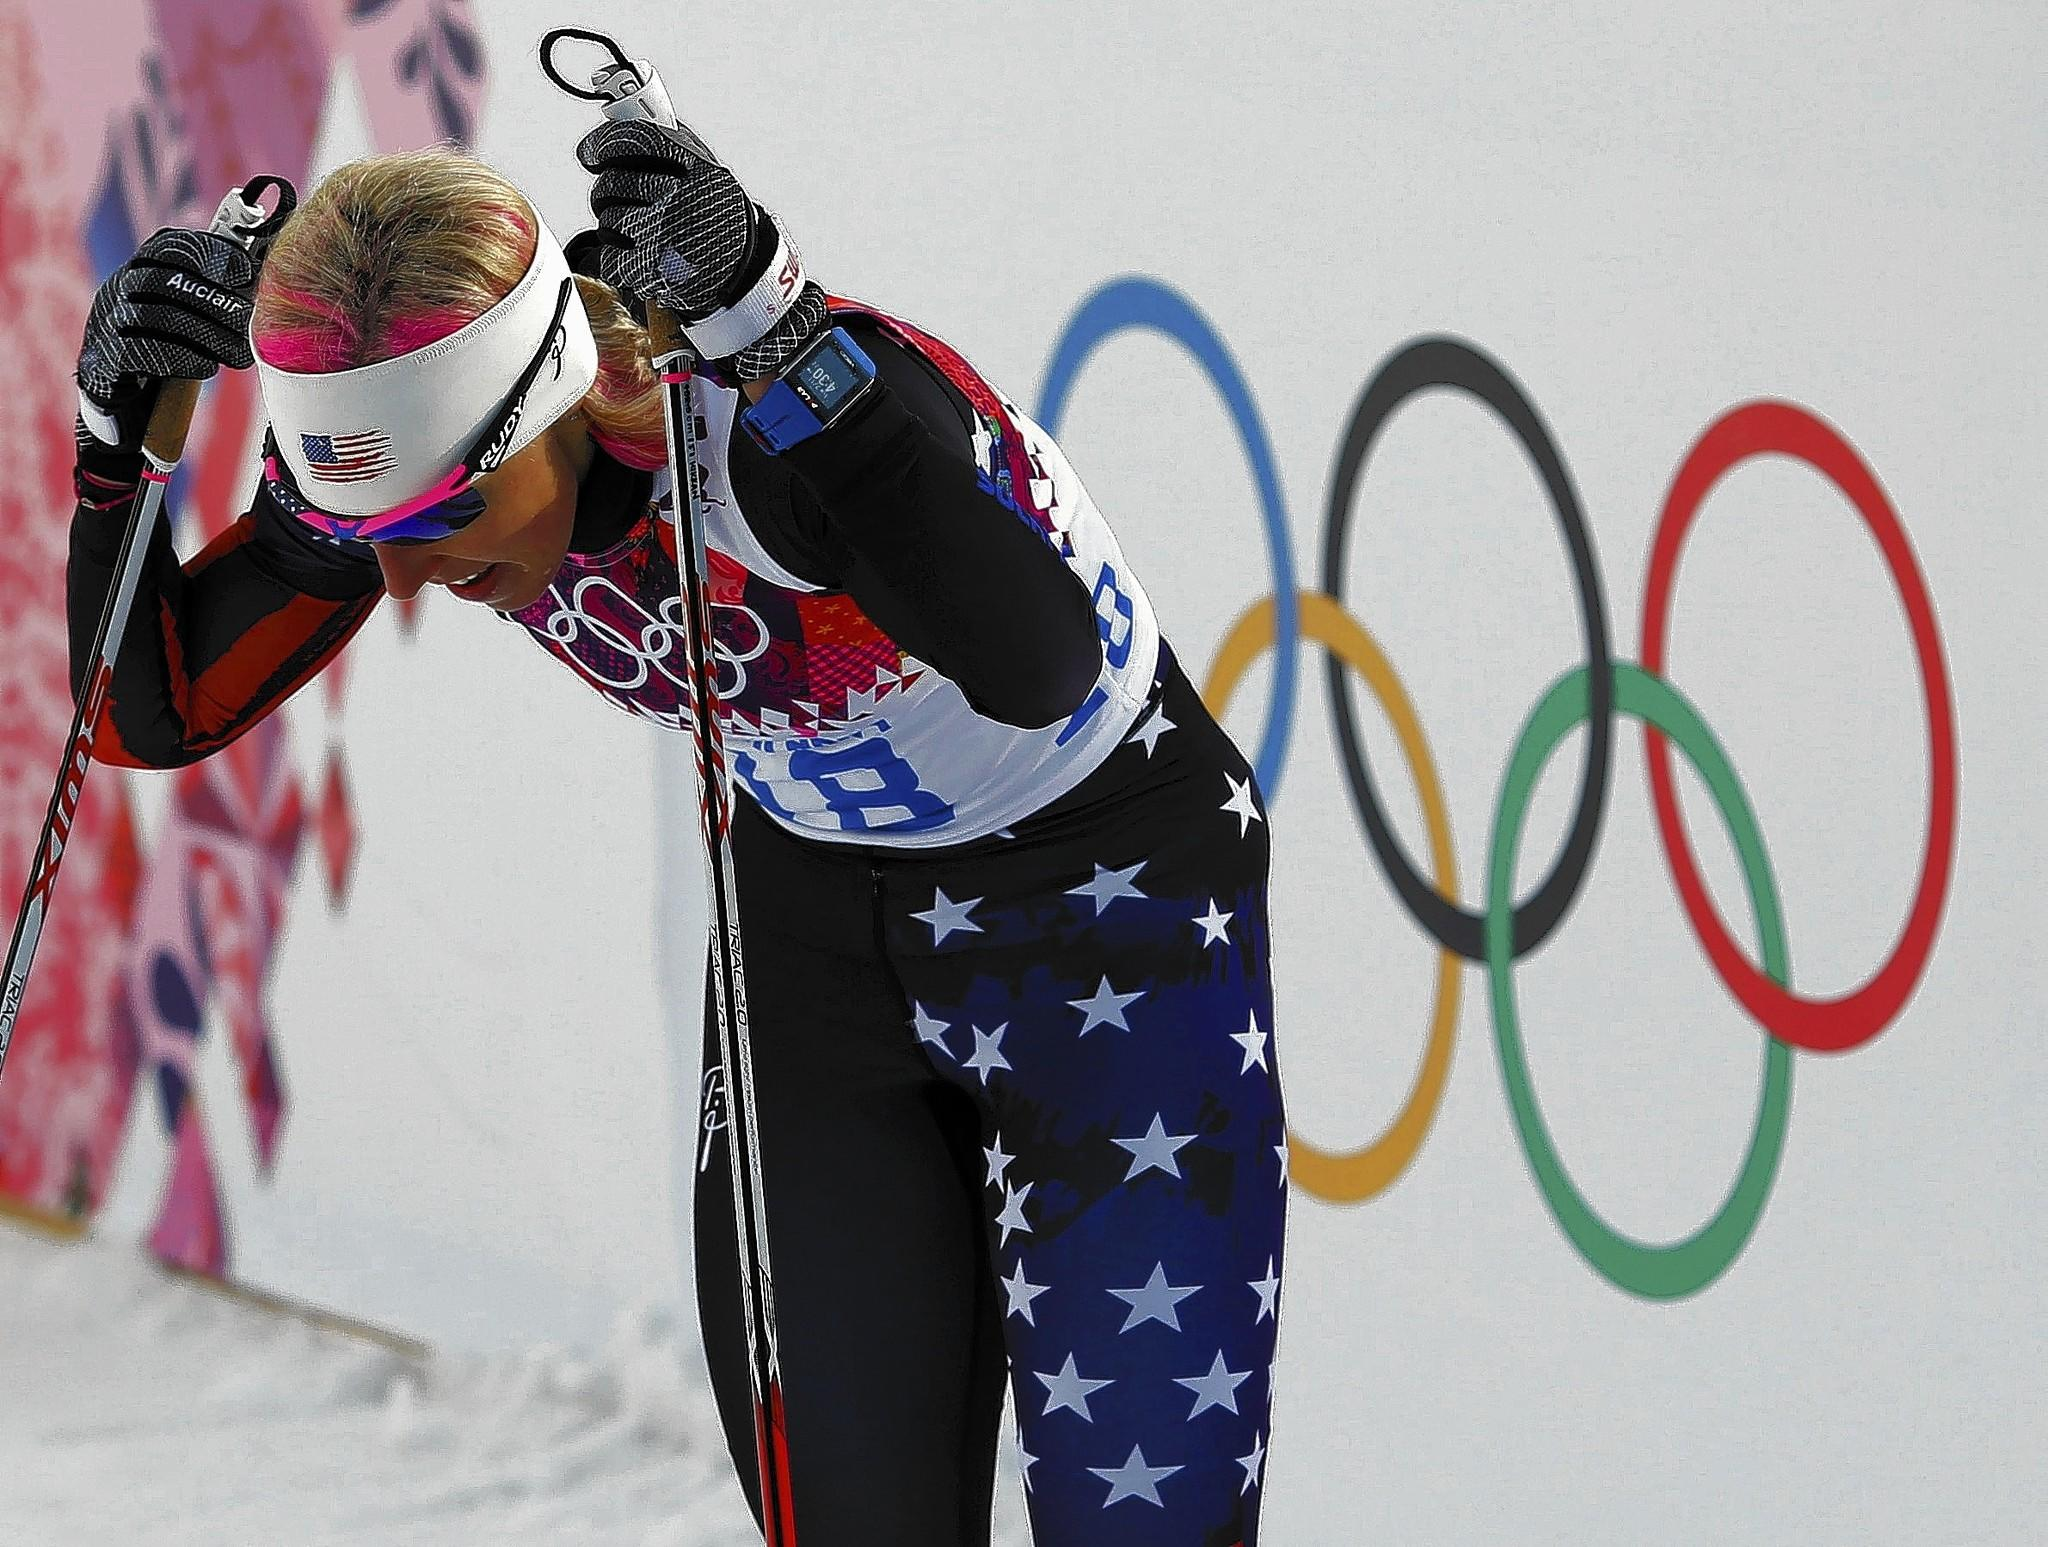 U.S. cross-country skier Kikkan Randall gathers herself after Tuesday's race at the Sochi Winter Olympics.